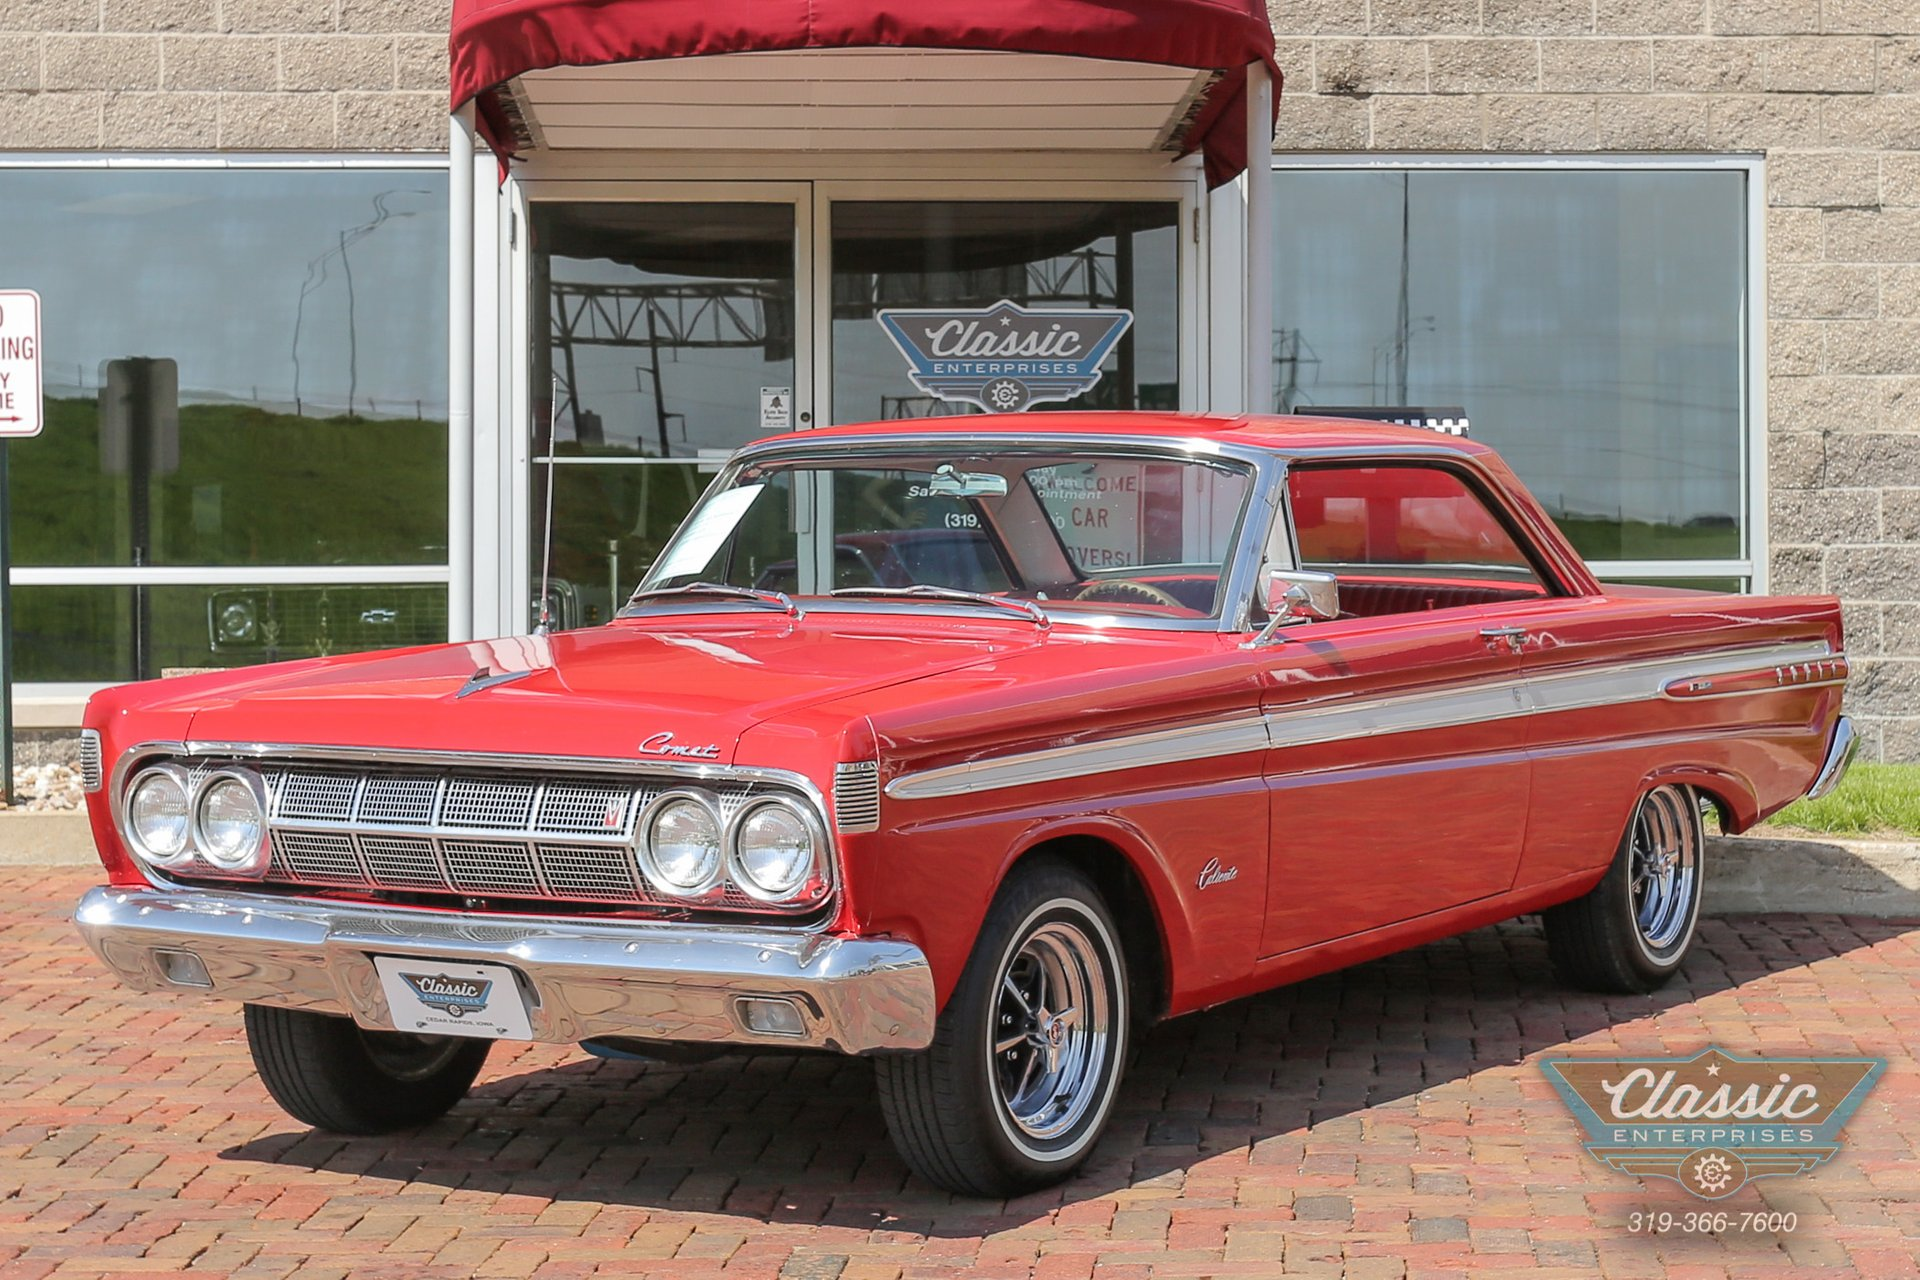 1964 Mercury Comet Caliente | Duffy's Classic Cars